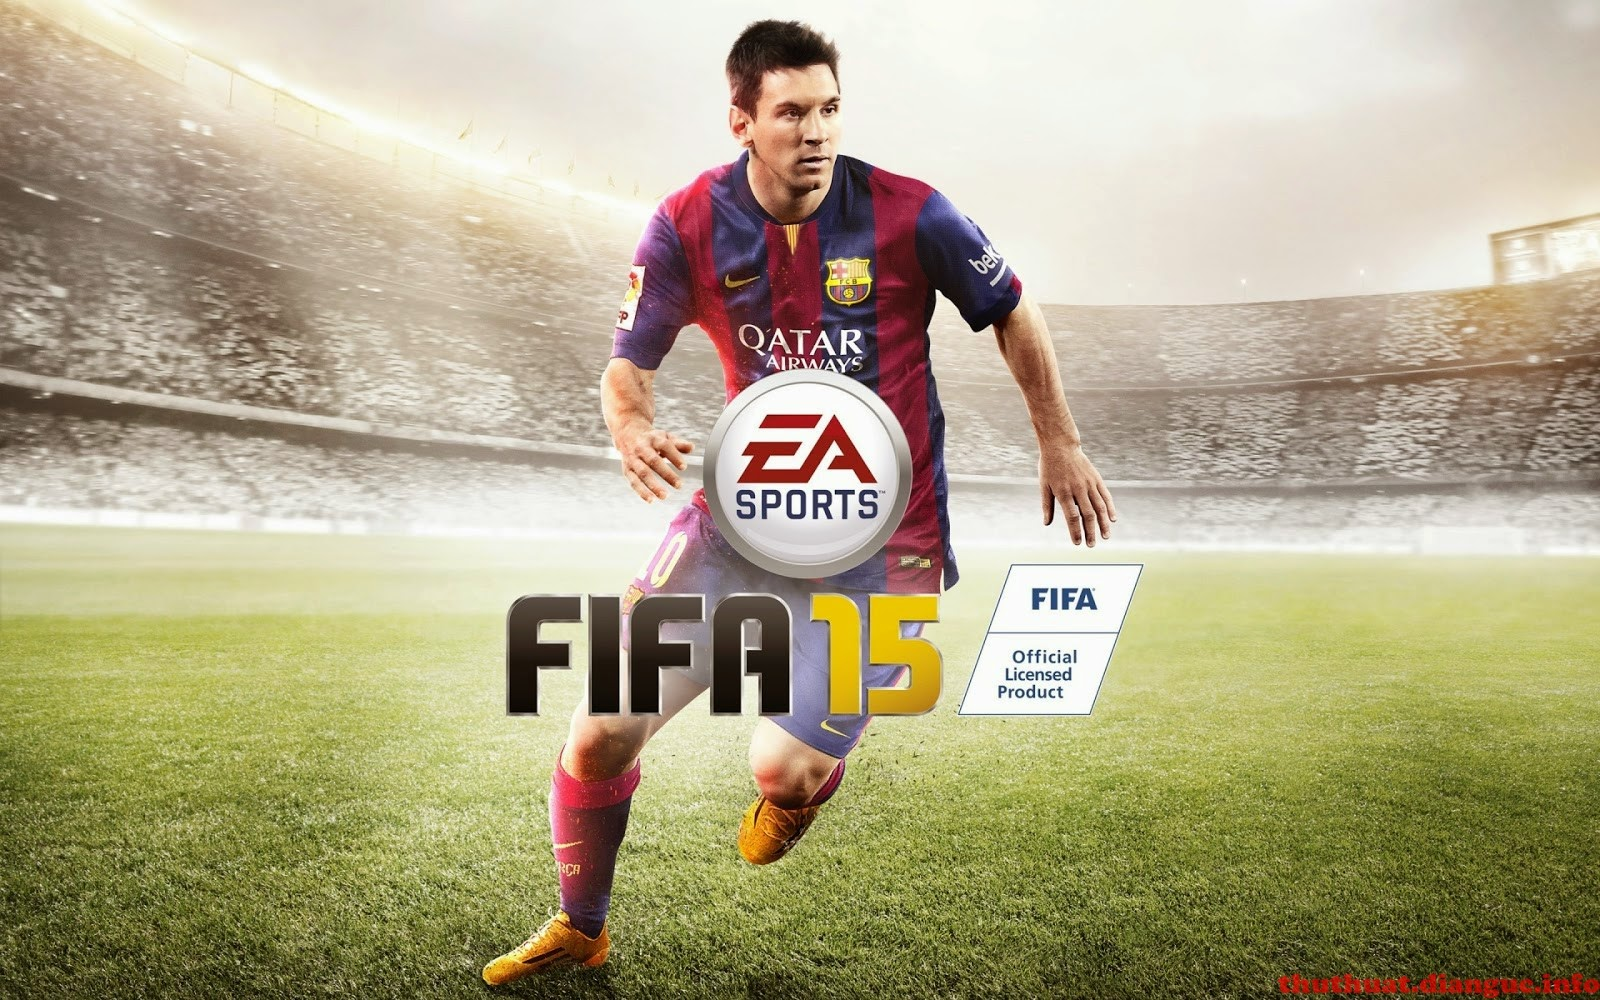 Download Fifa 2015 - Fifa 15 Full Crack,